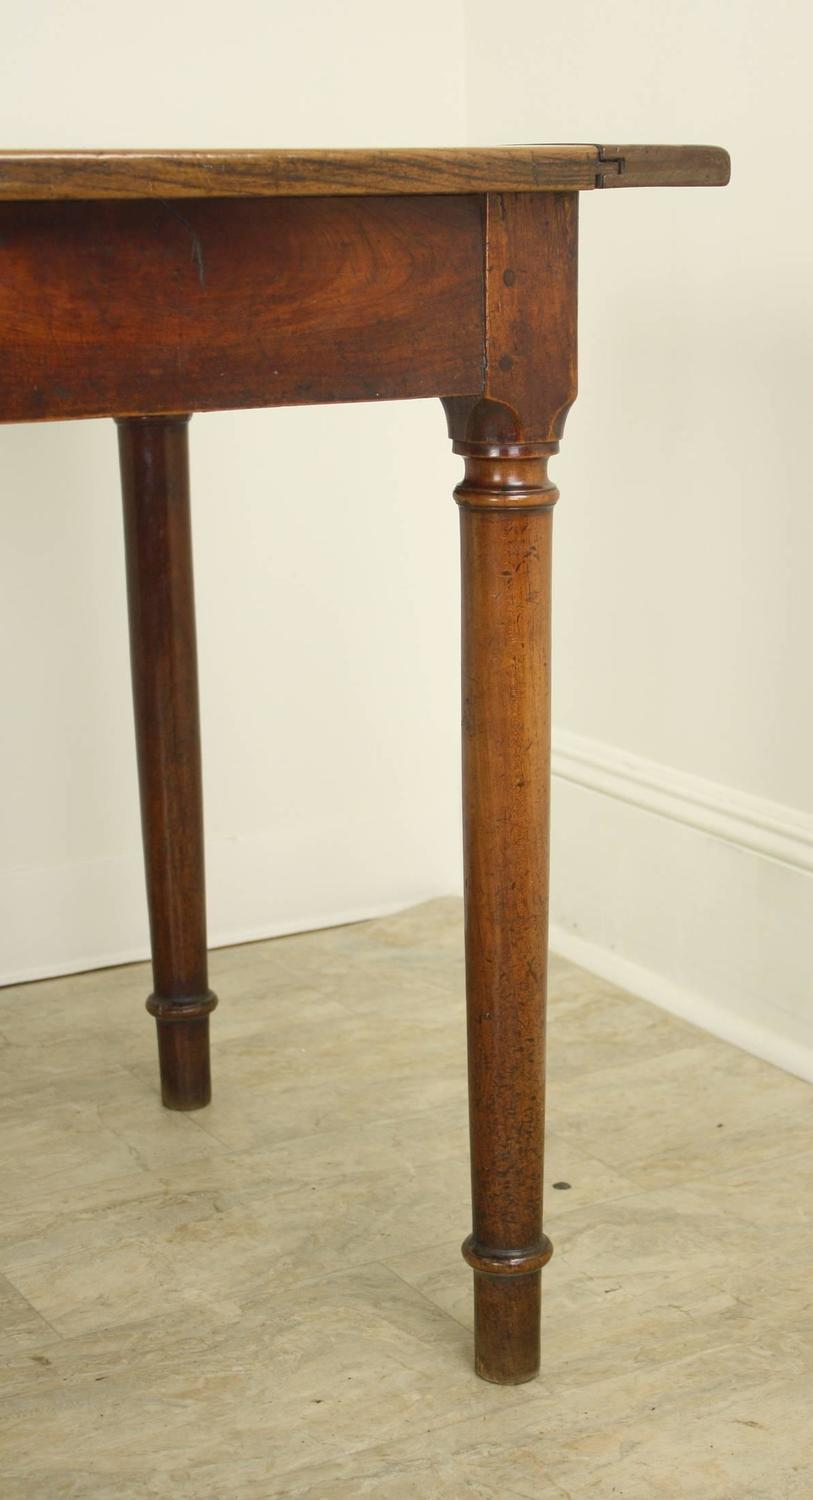 Narrow Dining Table With Bench : IMG0568z from hwiki.us size 813 x 1500 jpeg 73kB